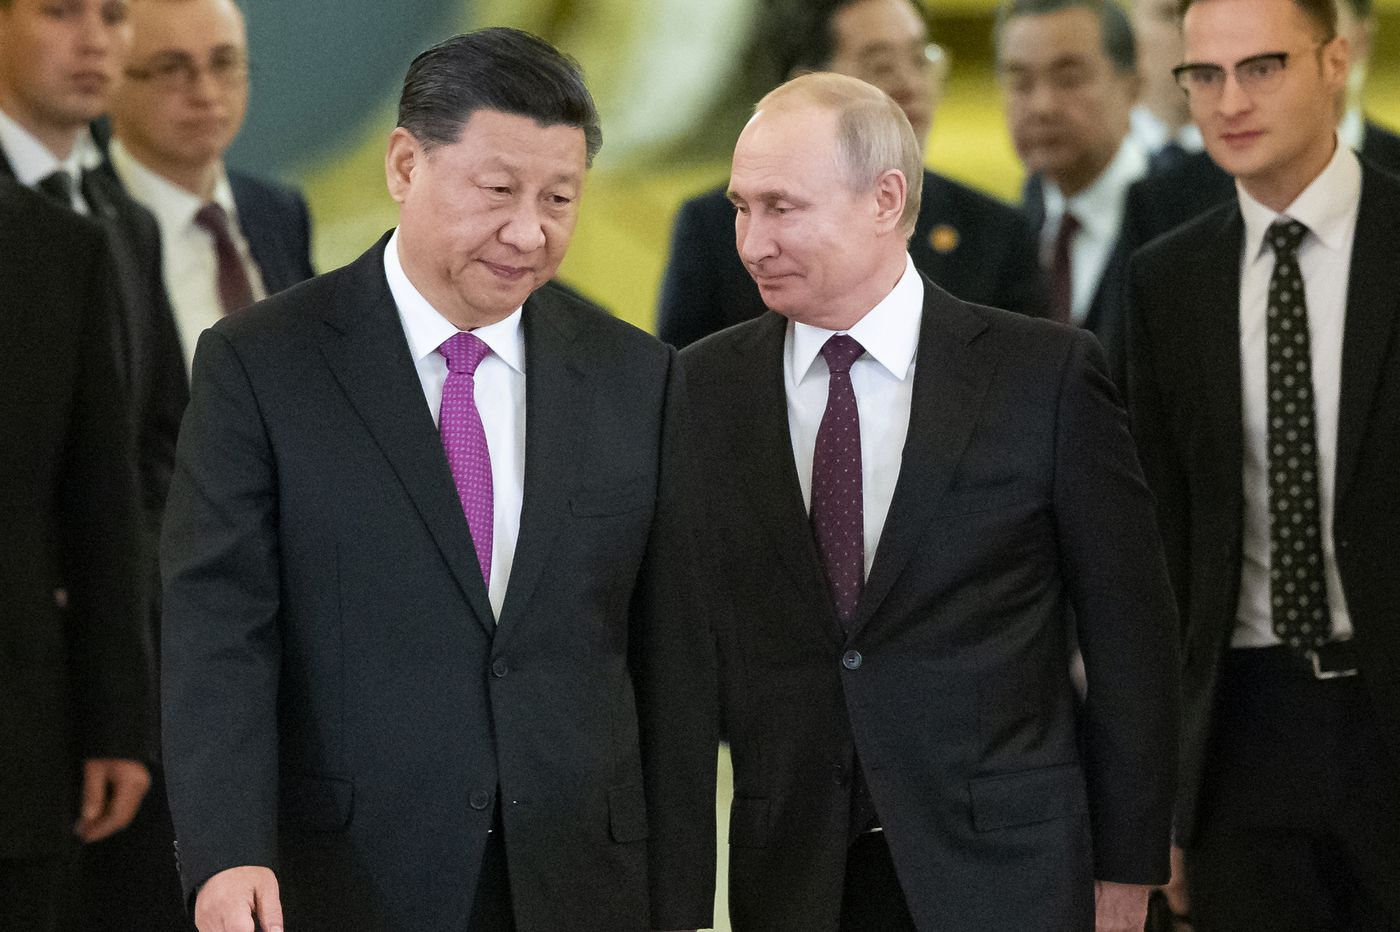 Putin and Xi won the Trump-Biden debate and could win the U.S. election, too | Trudy Rubin